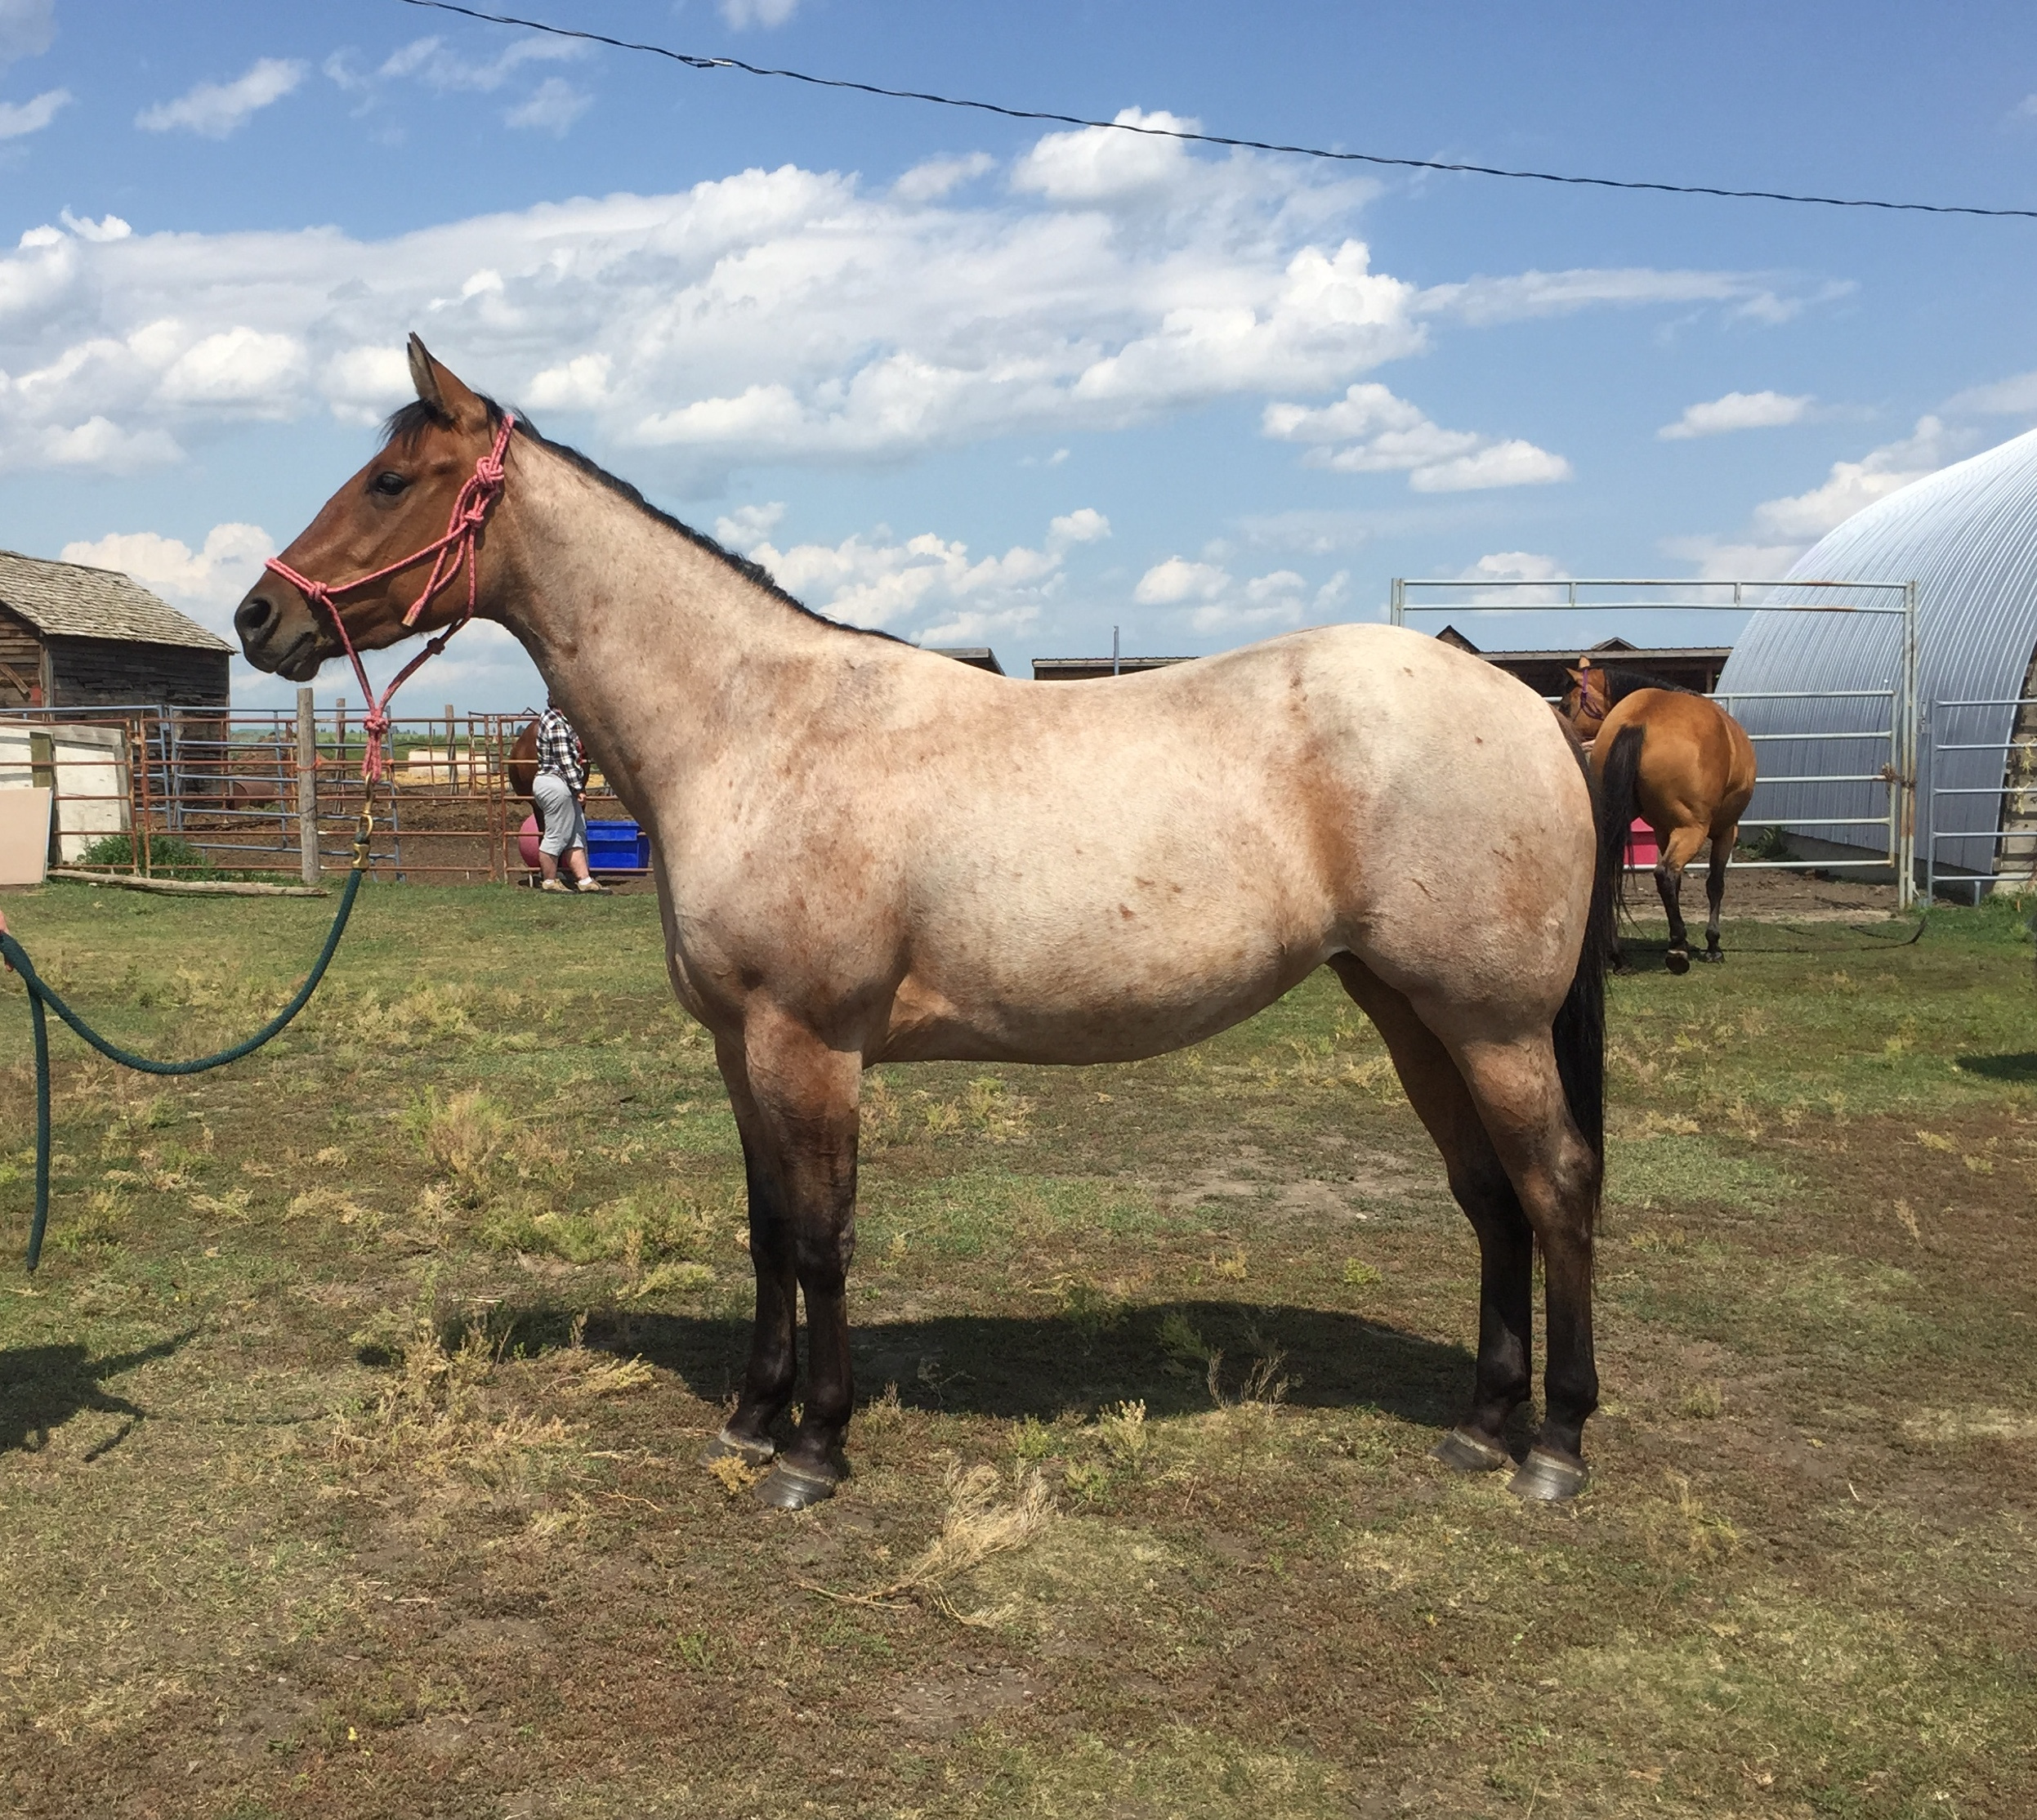 SANDY is a 2017 QH filly